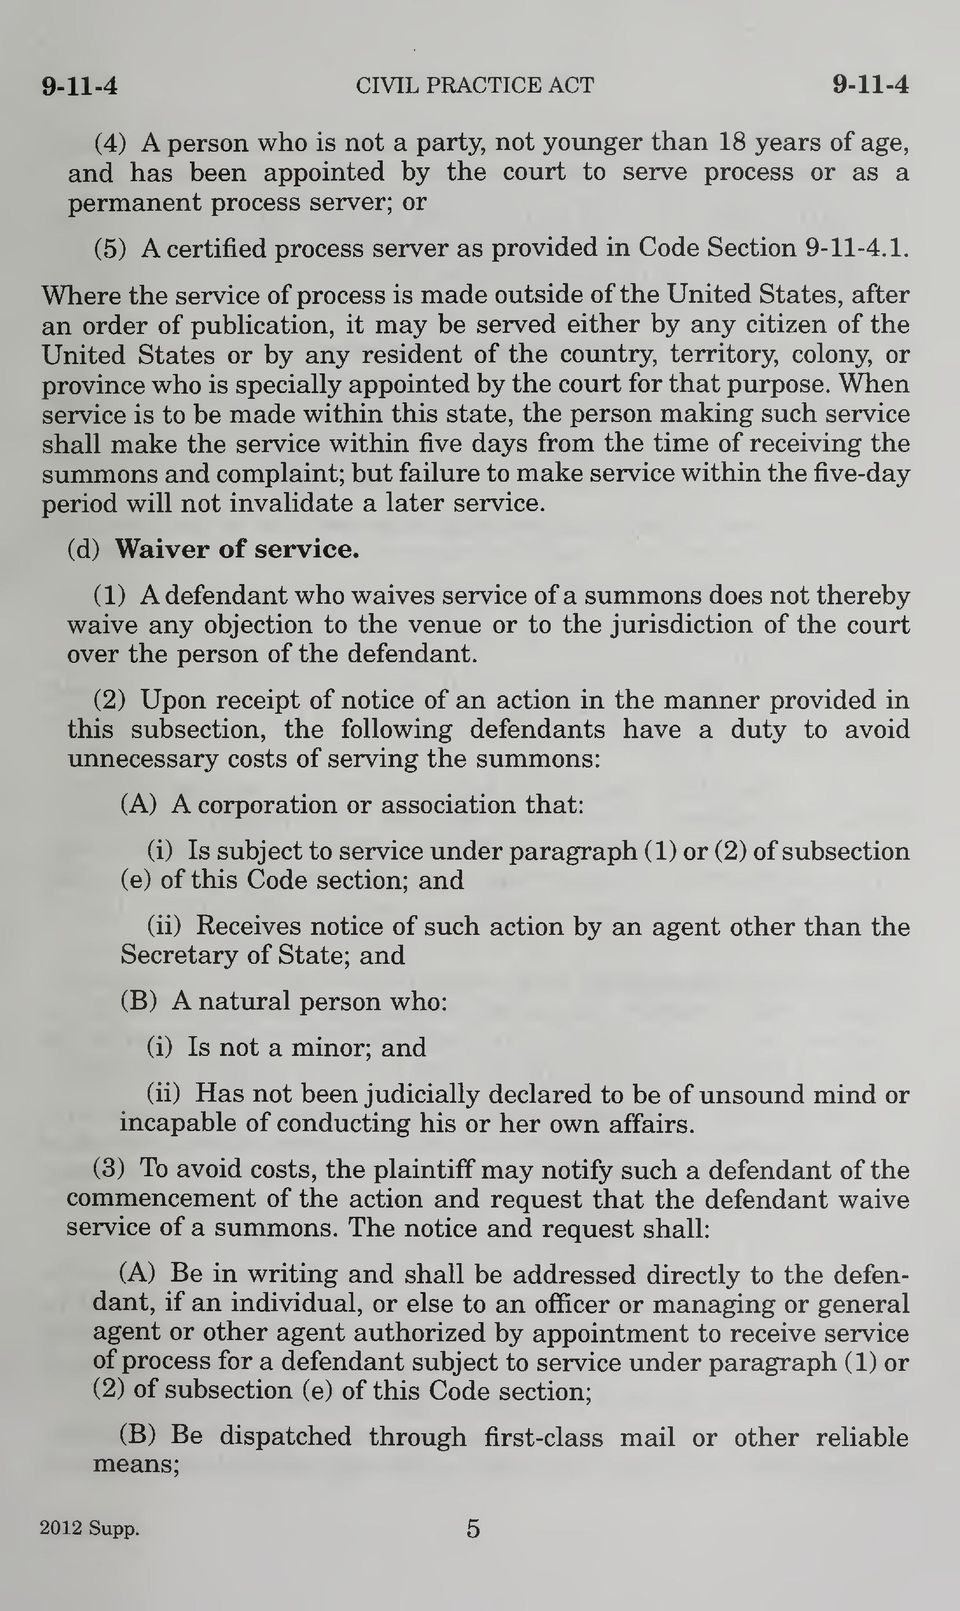 -4.1. Where the service of process is made outside of the United States, after an order of publication, it may be served either by any citizen of the United States or by any resident of the country,